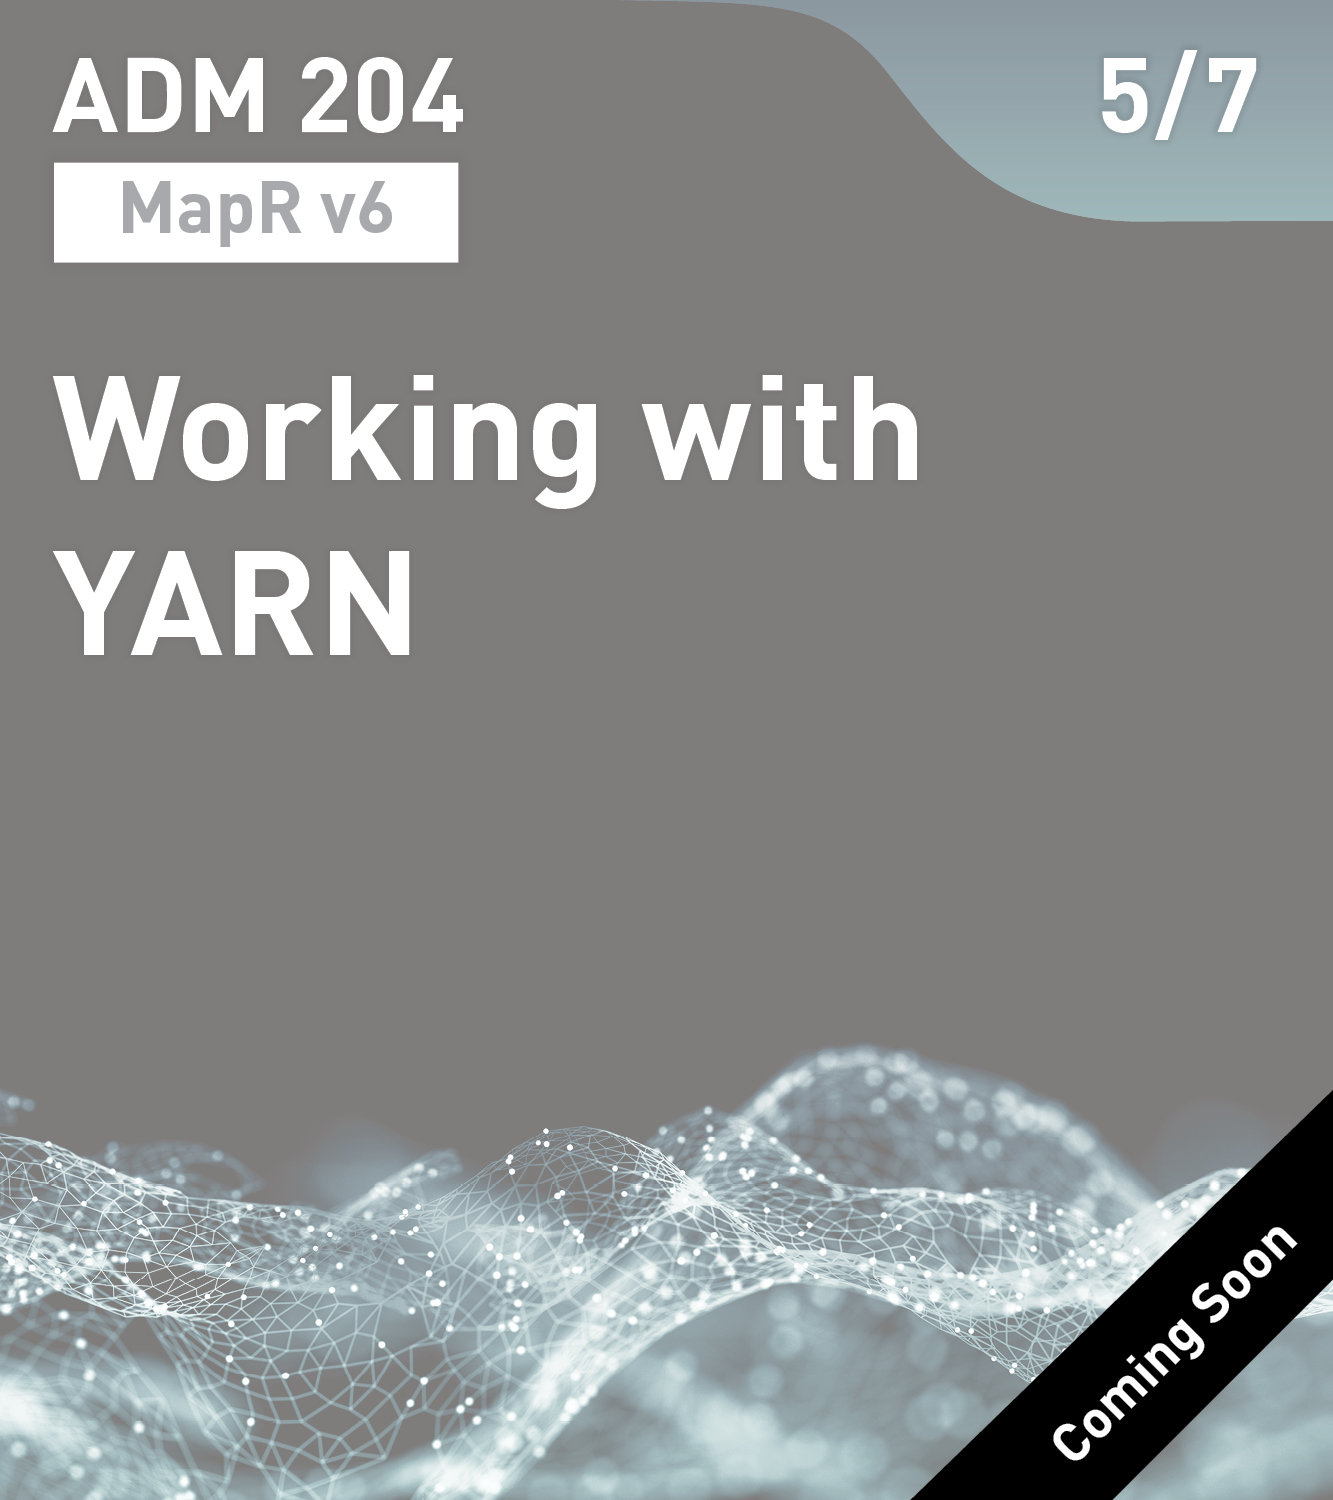 ADM 204 - Working with YARN (MapR v6)